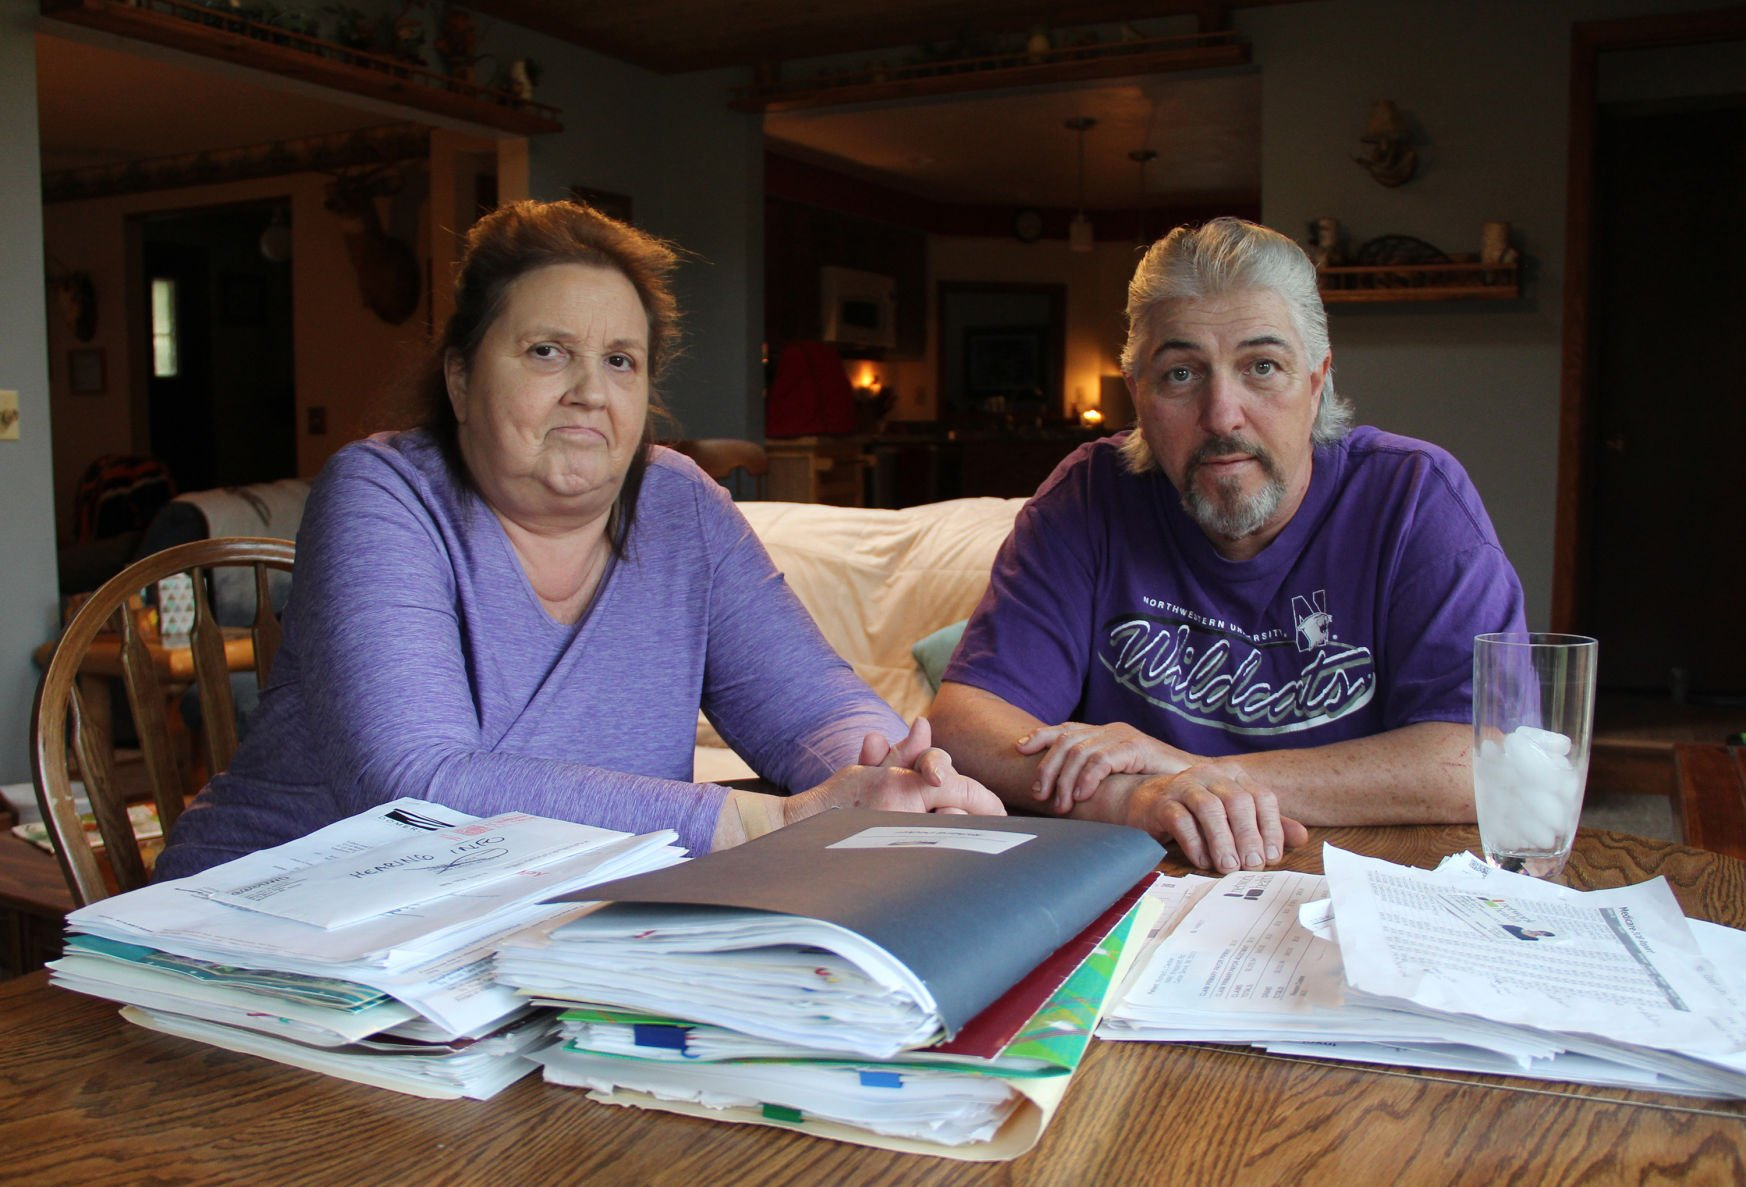 Injured Wisconsin workers face higher hurdles when